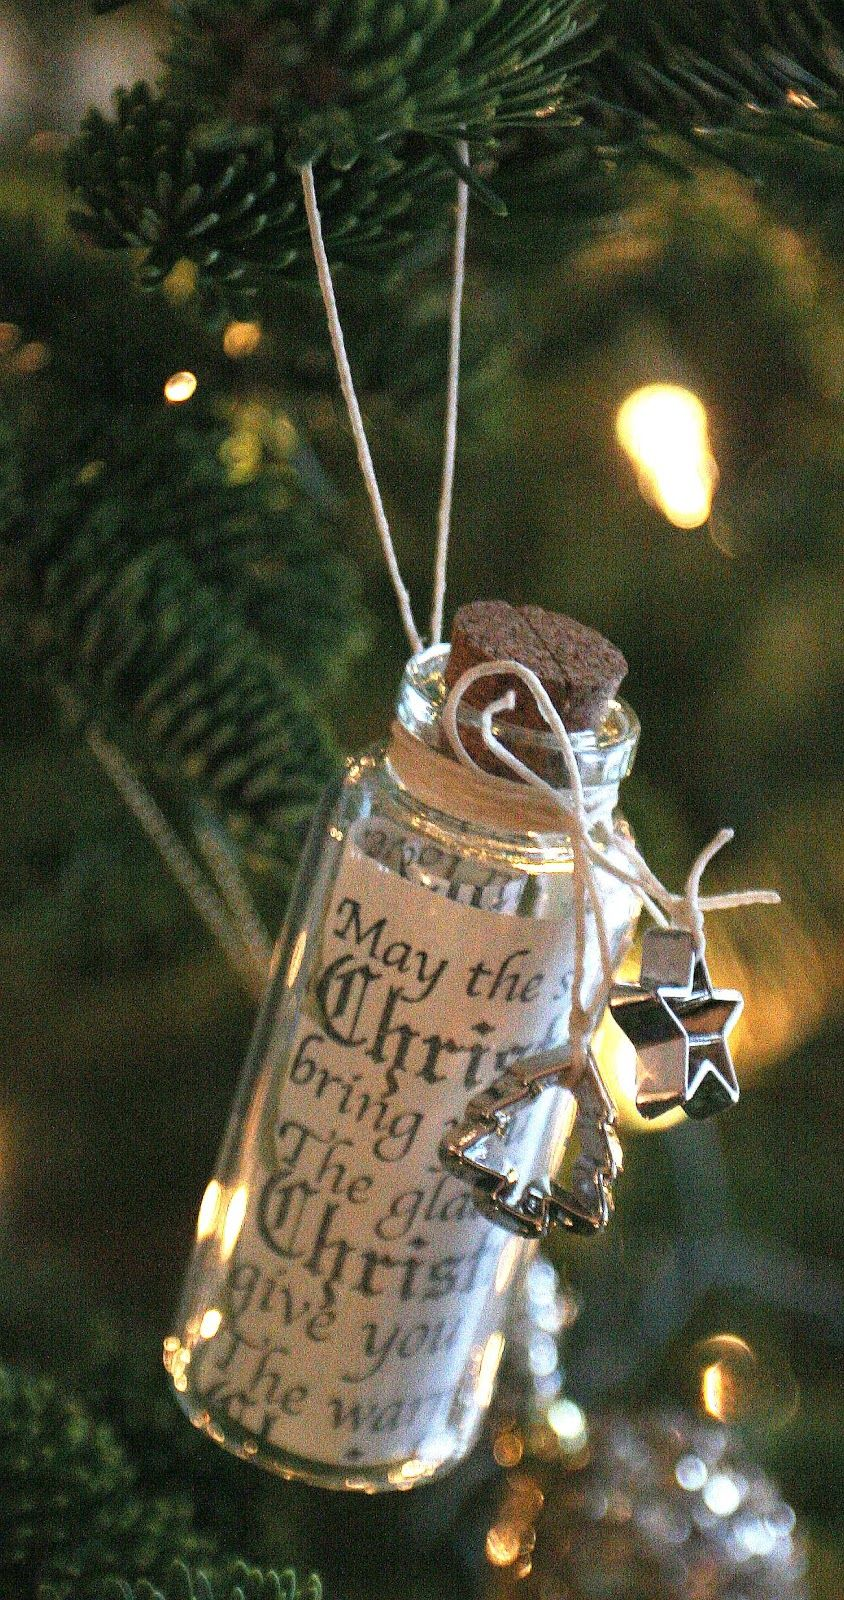 The christmas nail ornament - 50 Beautiful Christmas Ornaments That You Can Make At Home